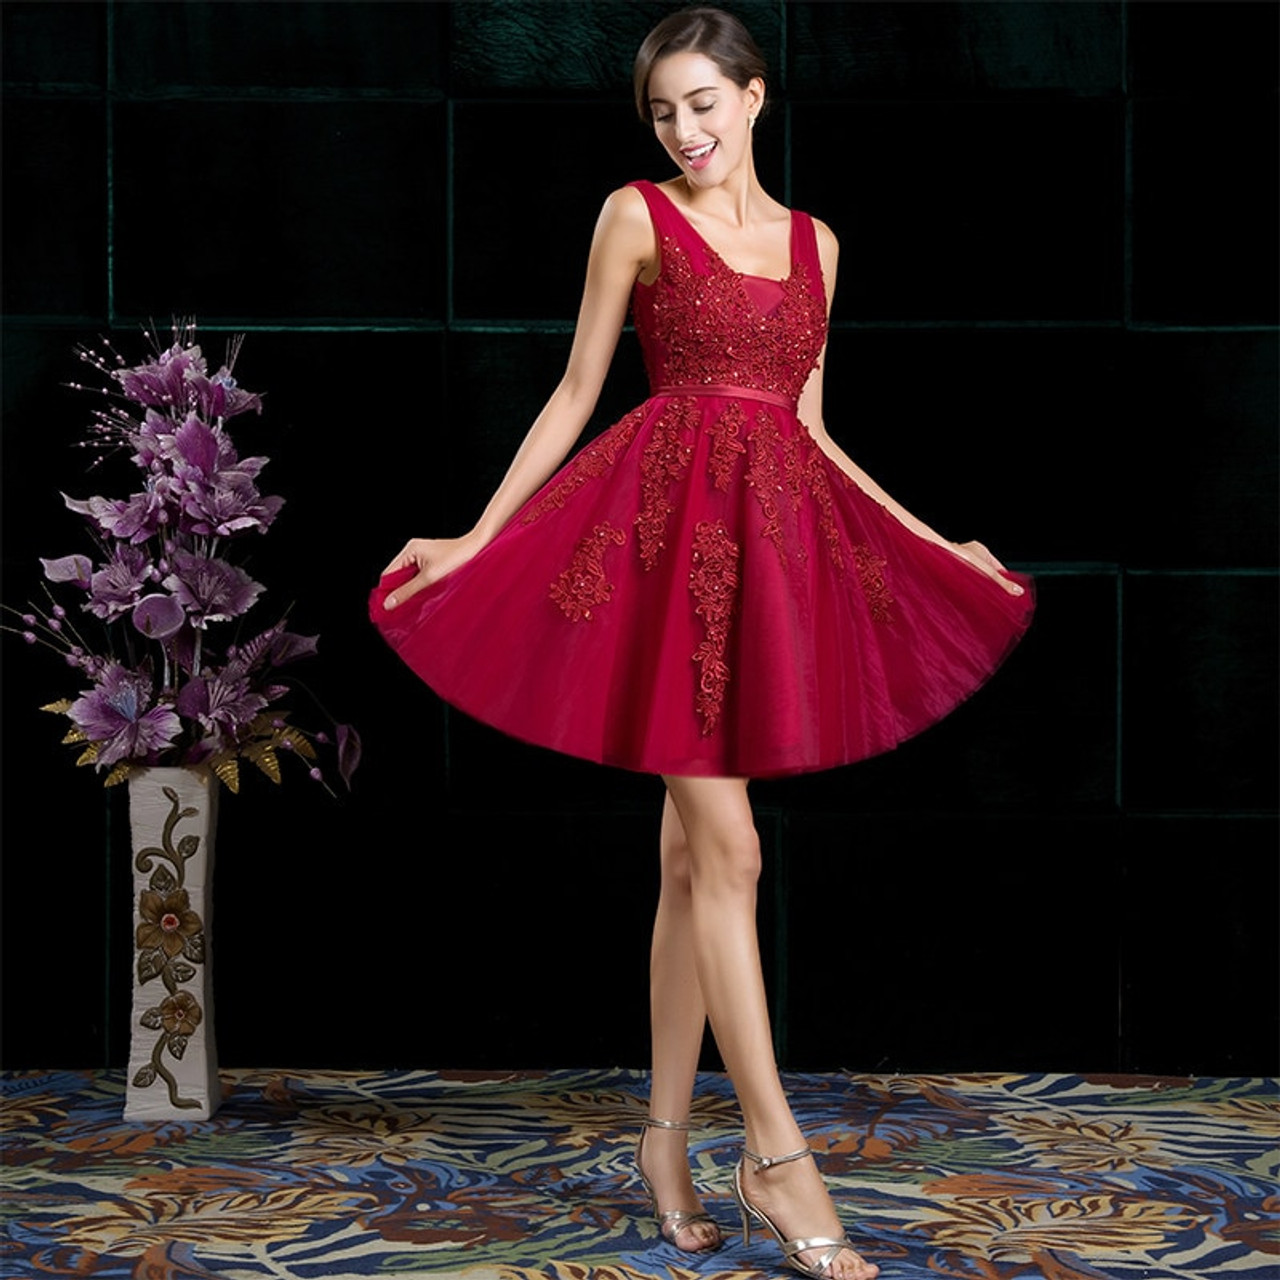 eb0171acfbc ... SSYFashion Sexy Short Cocktail Dresses Bridal Banquet Wine Red Lace  Backless Party Formal Dress Homecoming Dress ...